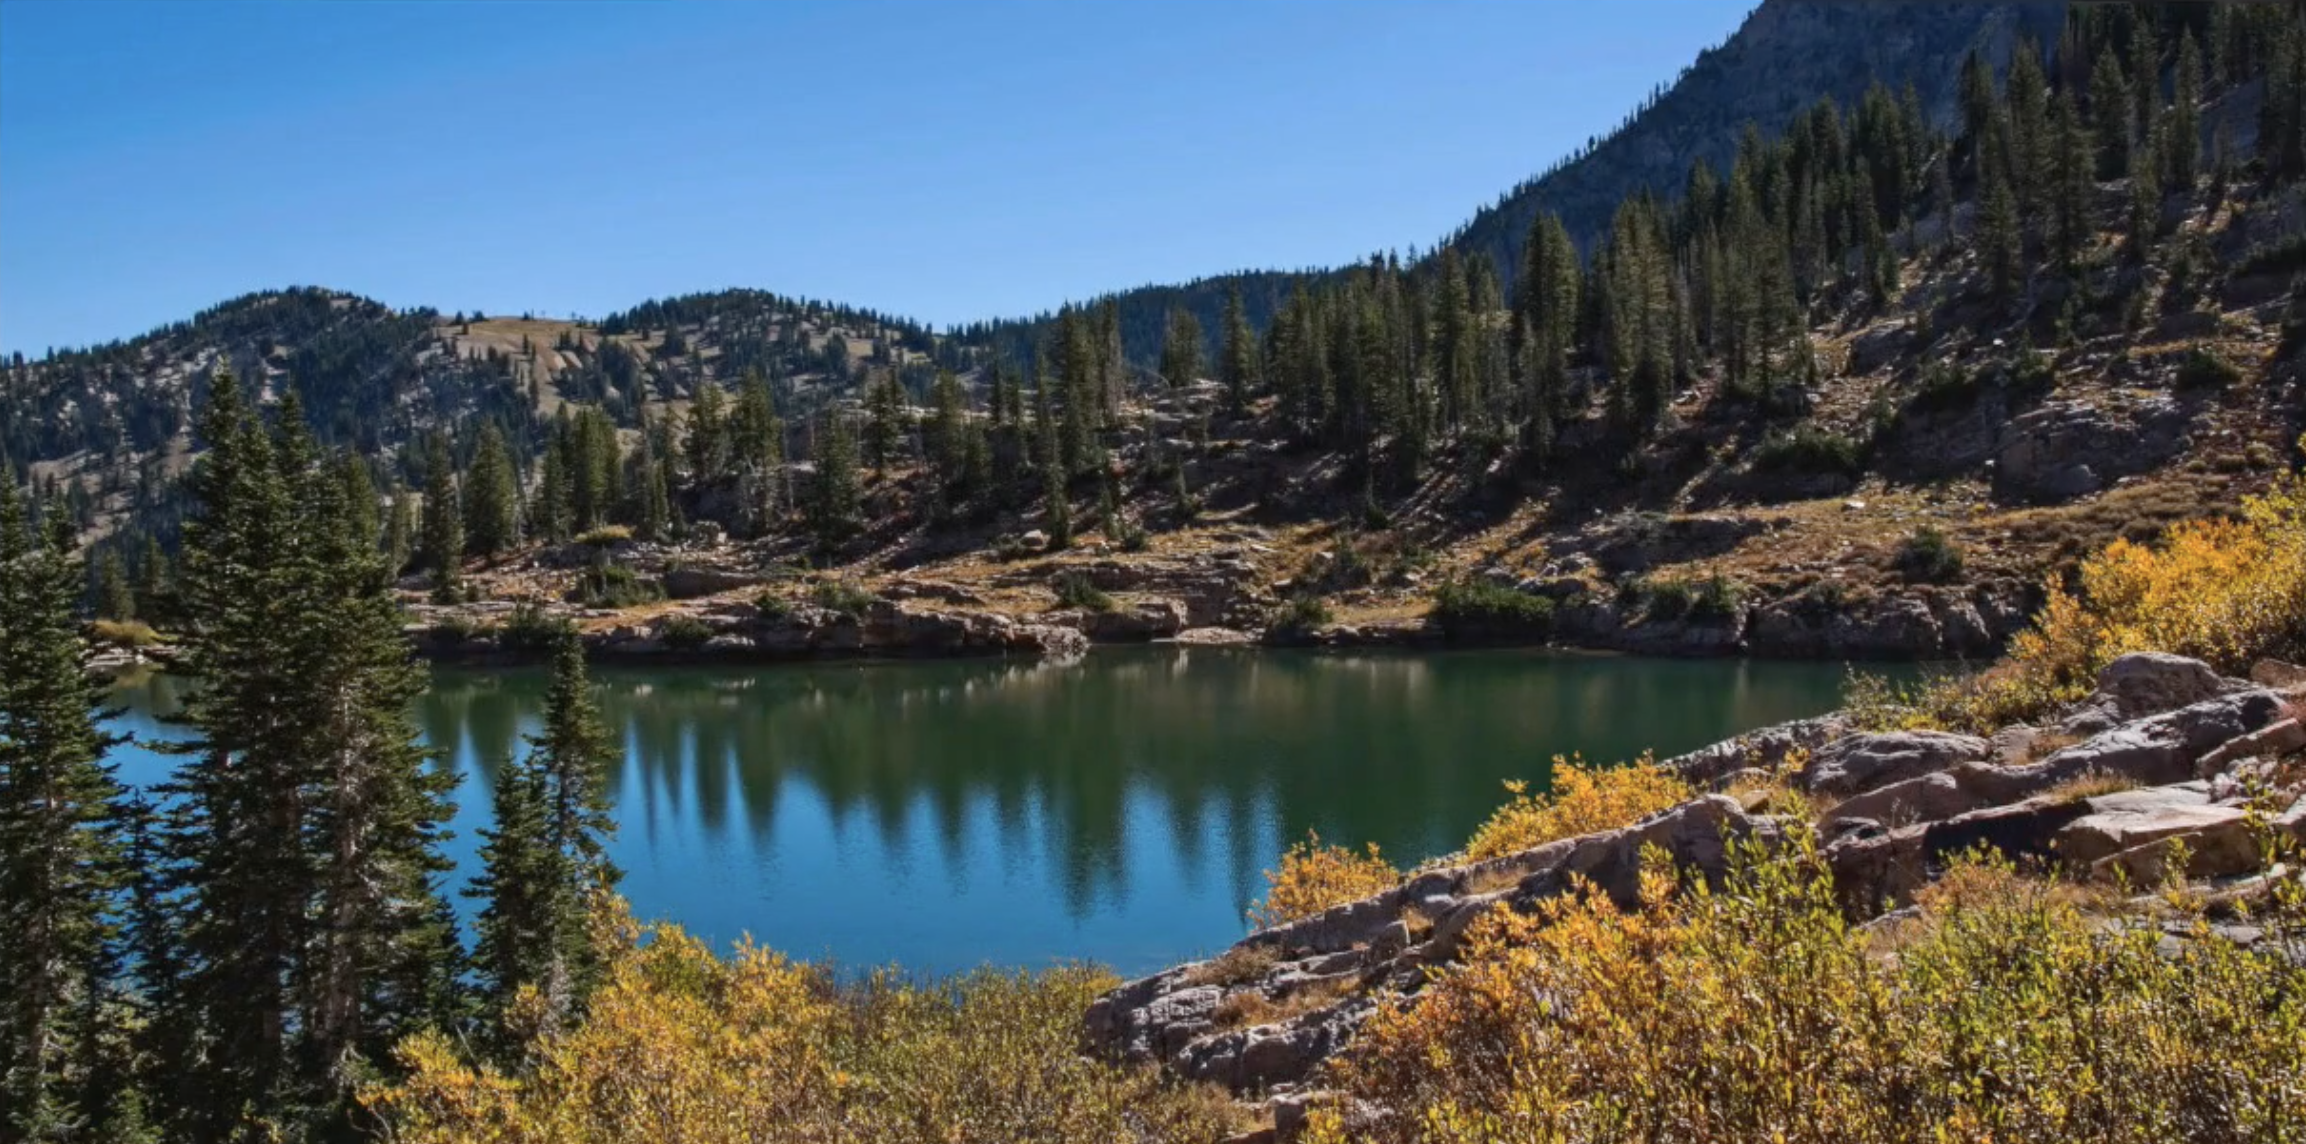 Solve It: Water Resources - Your challenge: To research the source of water coming into your community and come up with a plan to help measure and communicate the amount of water being used in your area.